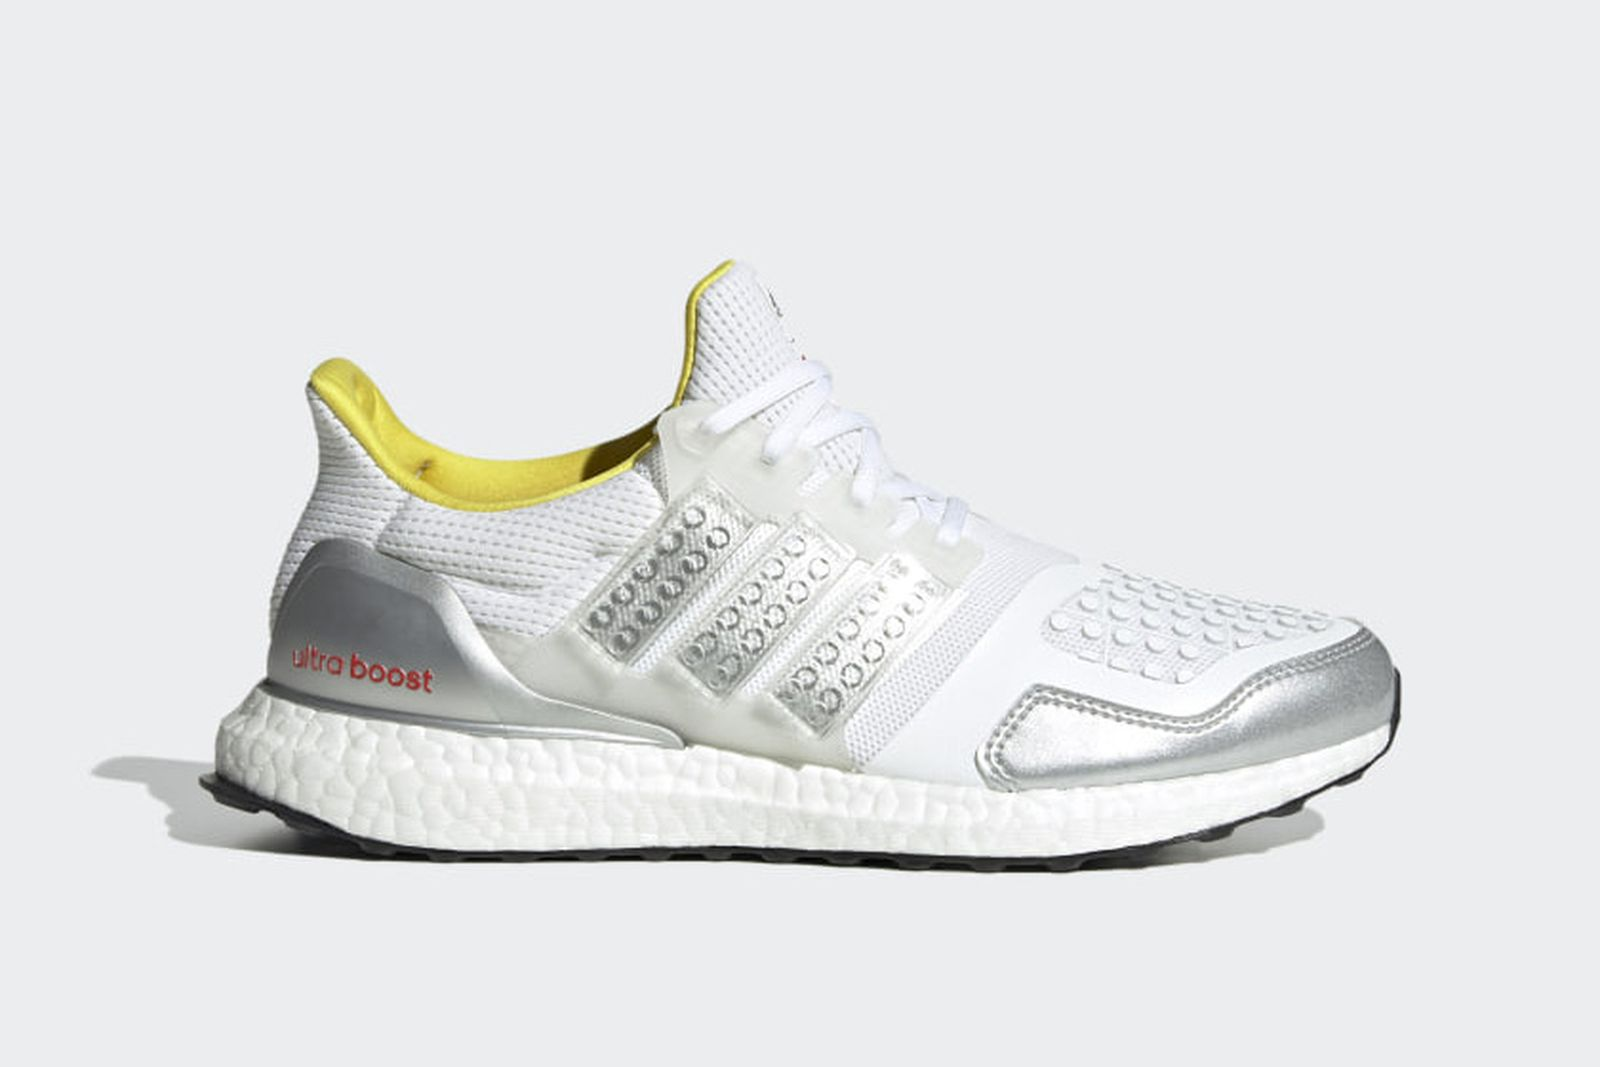 lego-adidas-ultraboost-dna-release-date-price-01